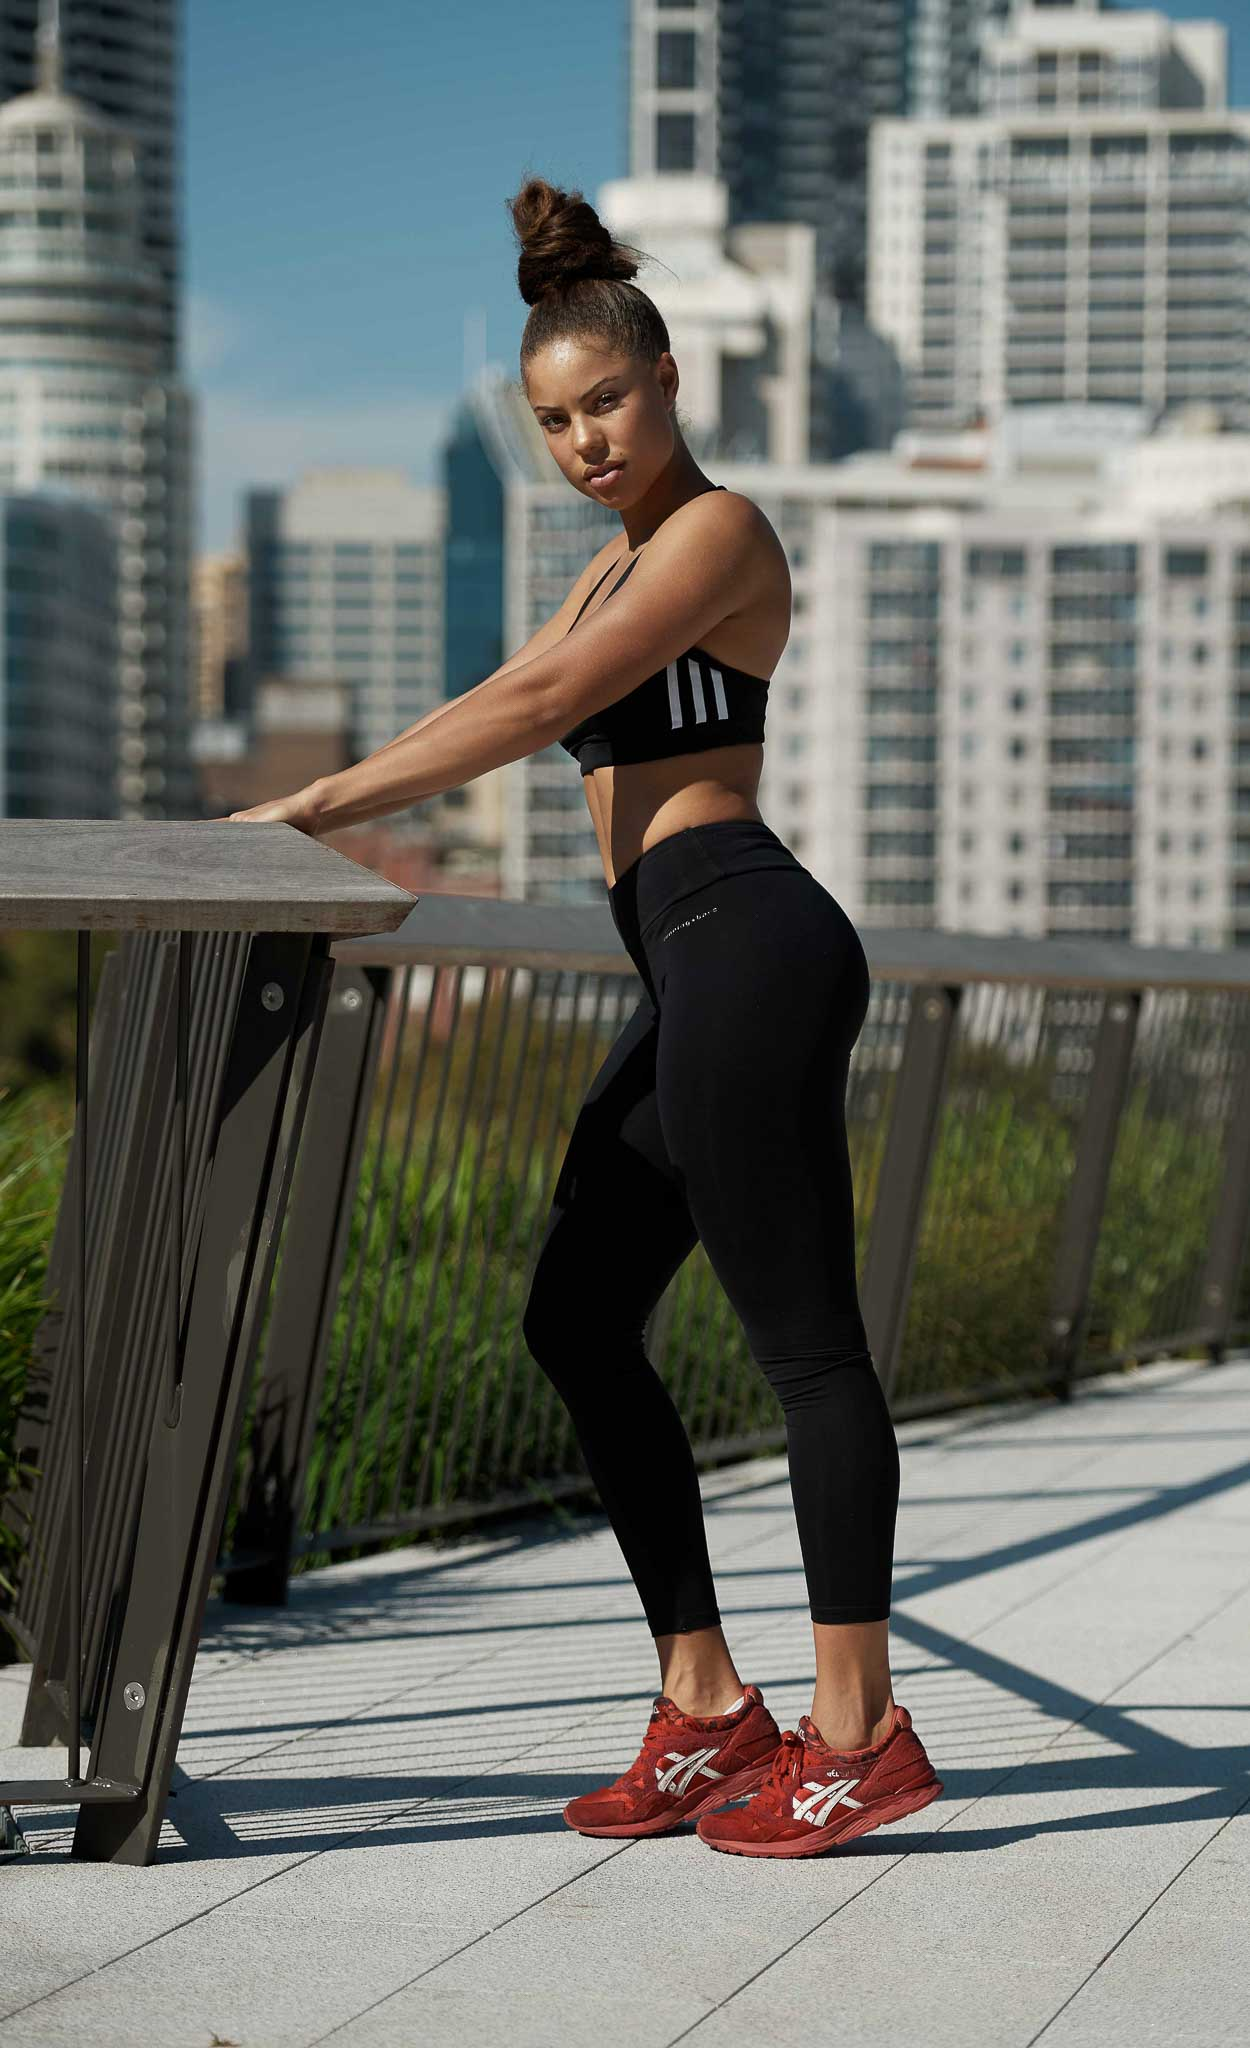 Kirsty looking fierce holding onto a rail wearing a black Adidas top and matching Adidas tight leggings